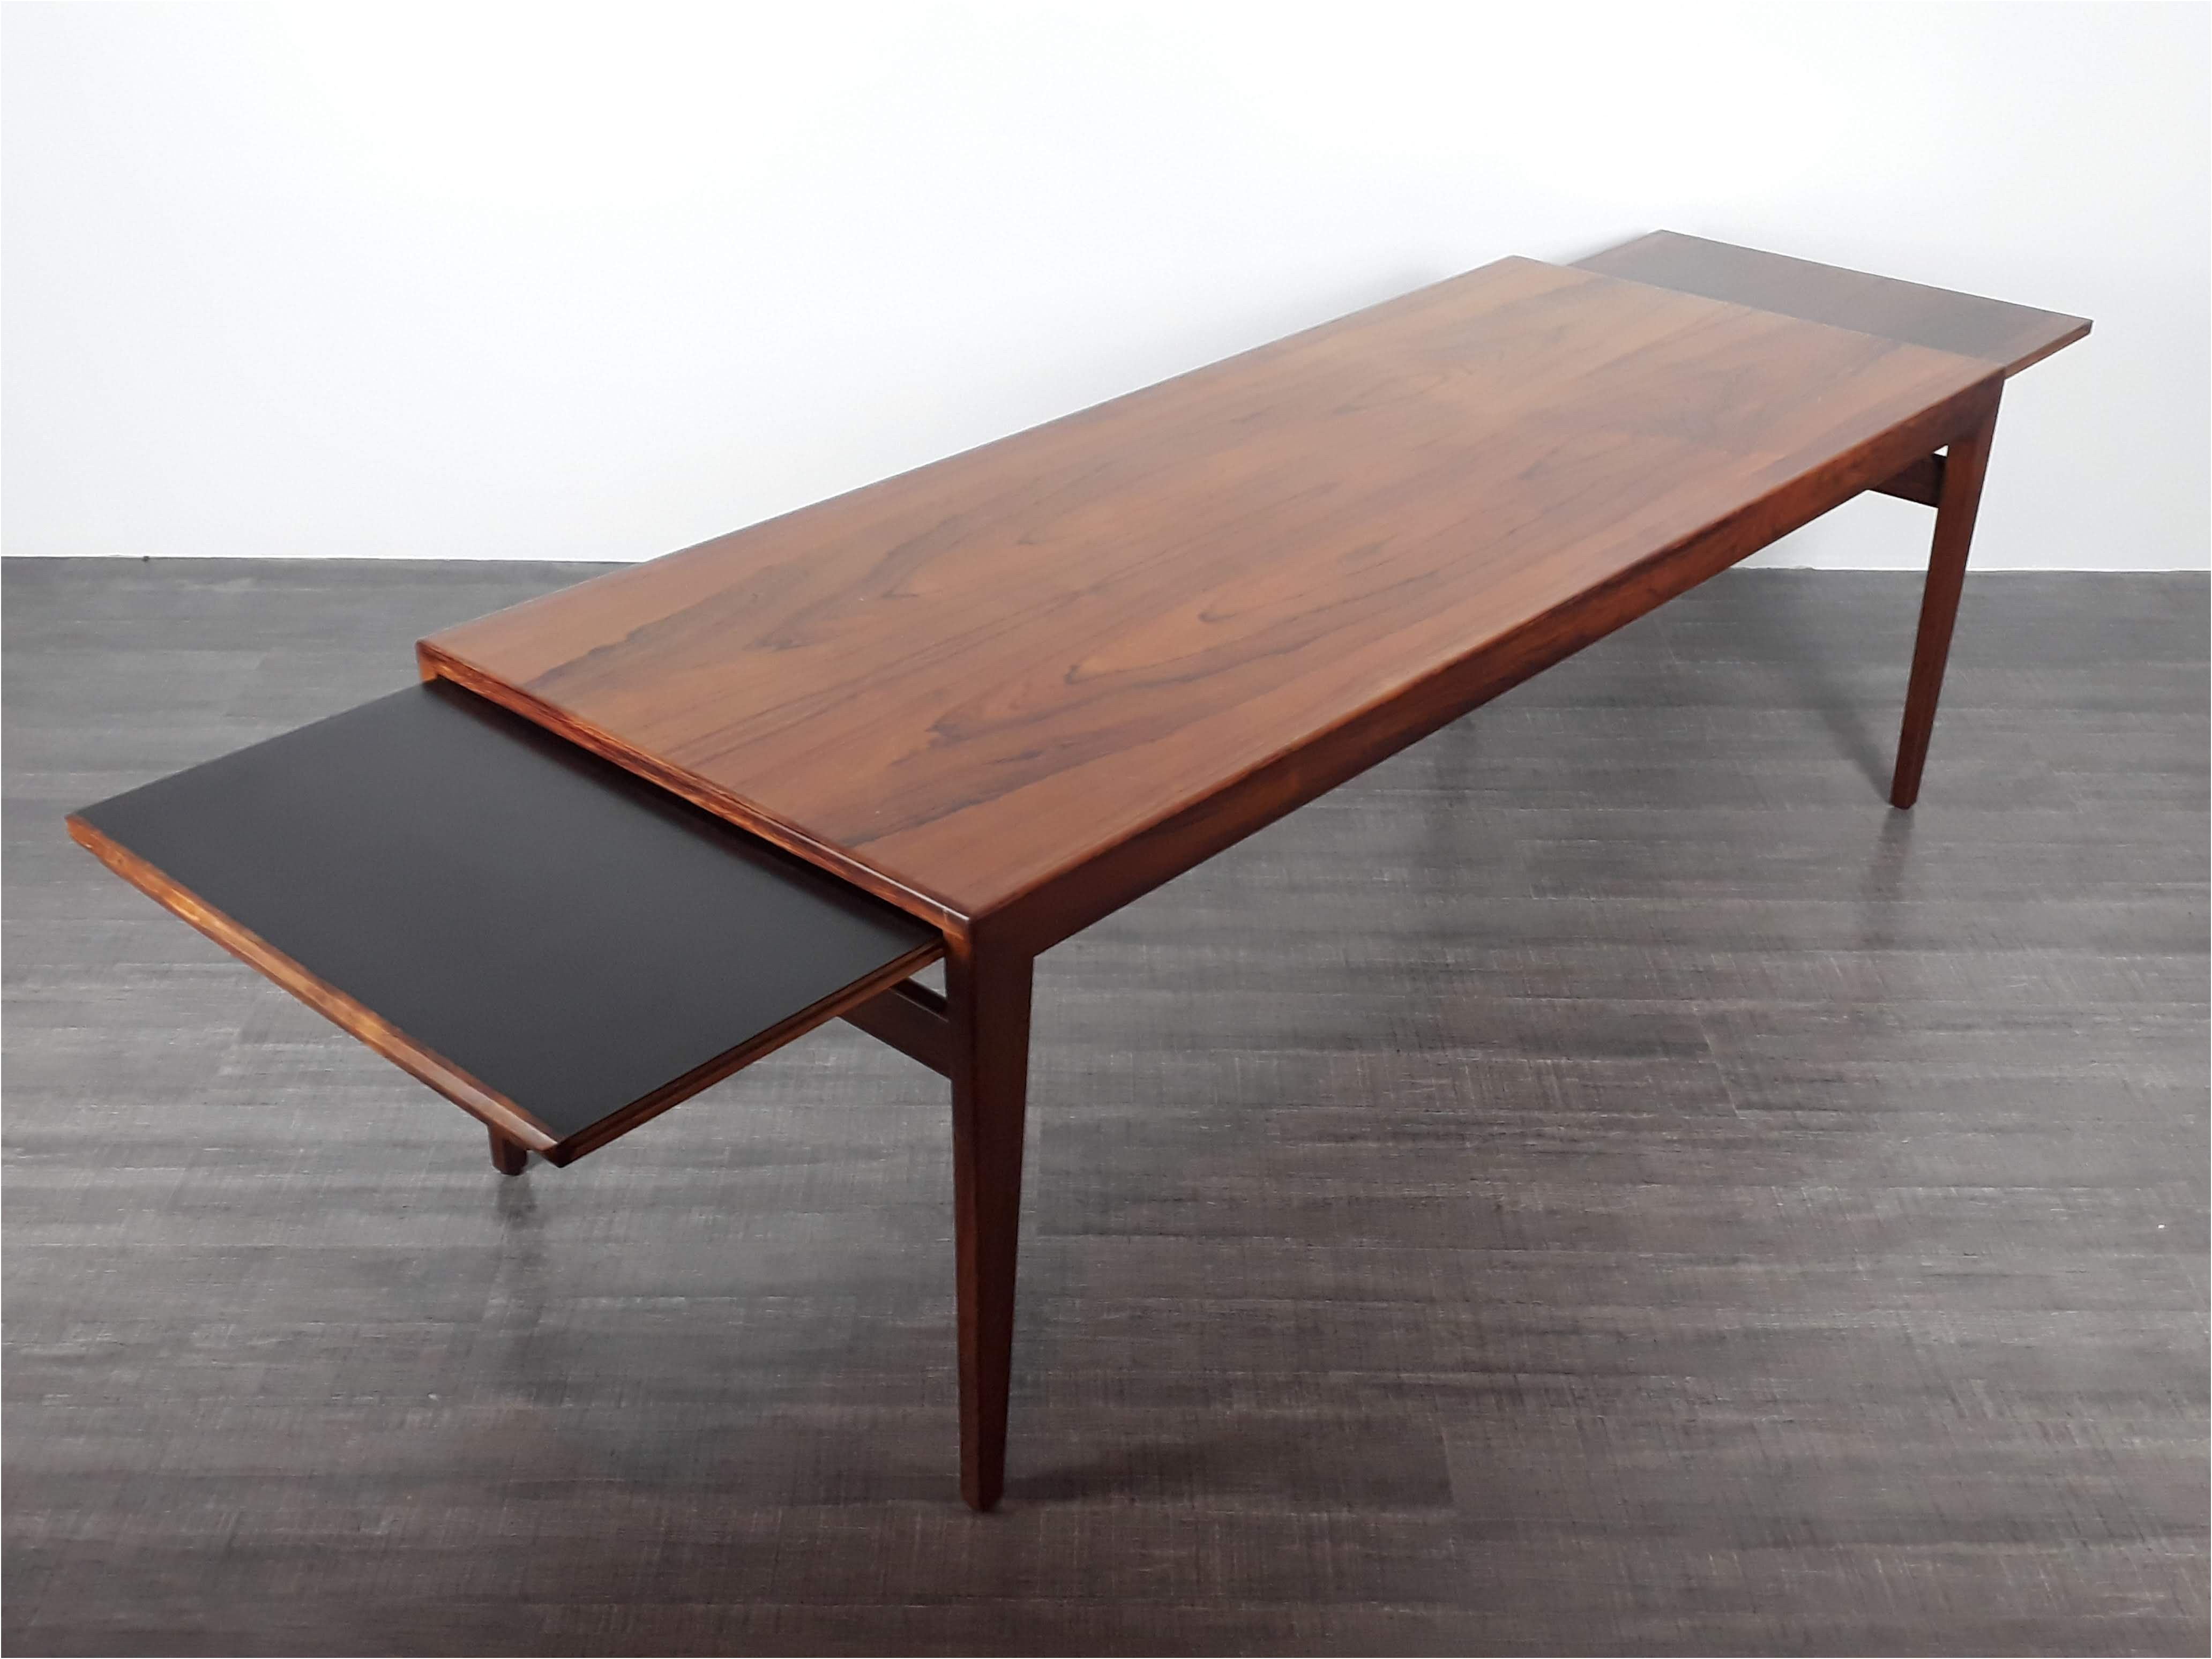 11 Remarquable Table Basse Extensible Pictures